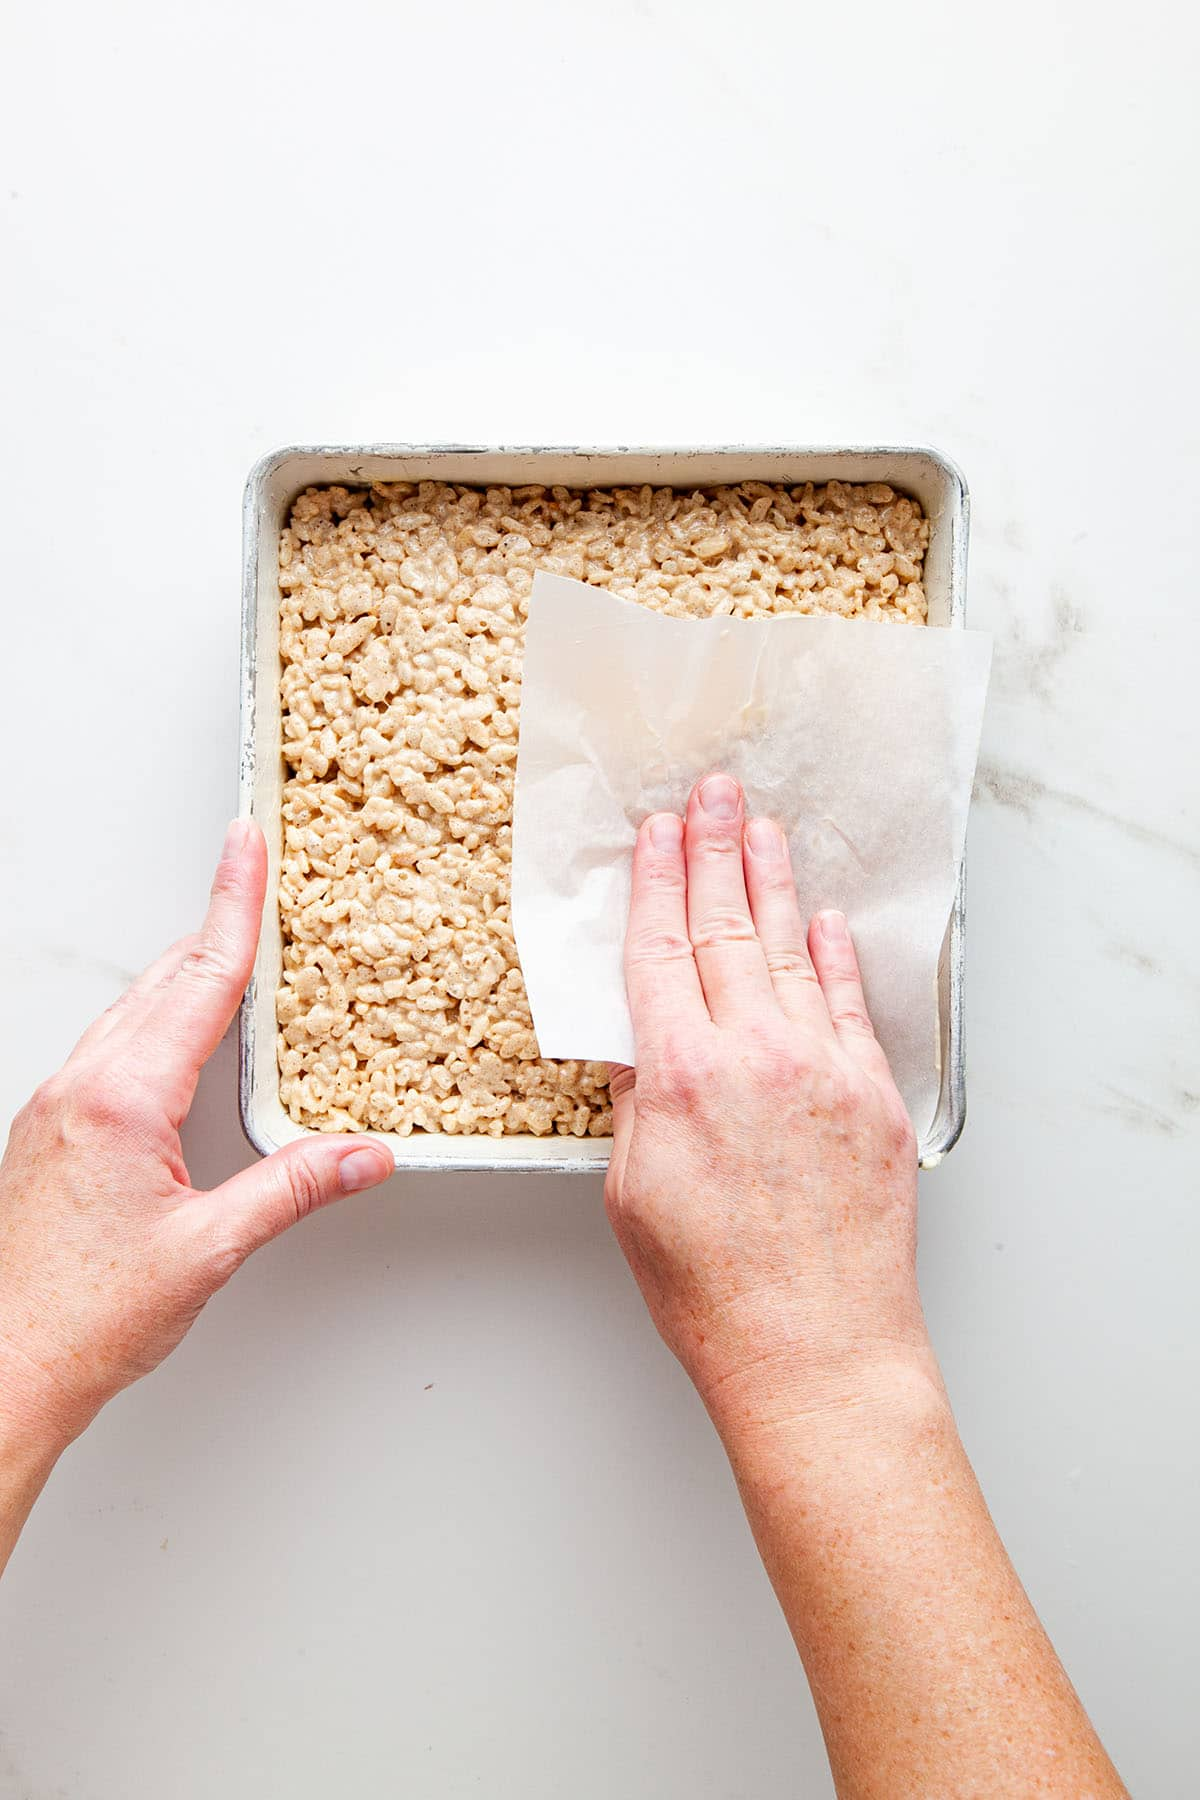 A hand smoothing the top of a pan of marshmallow treats with a small piece of parchment paper.